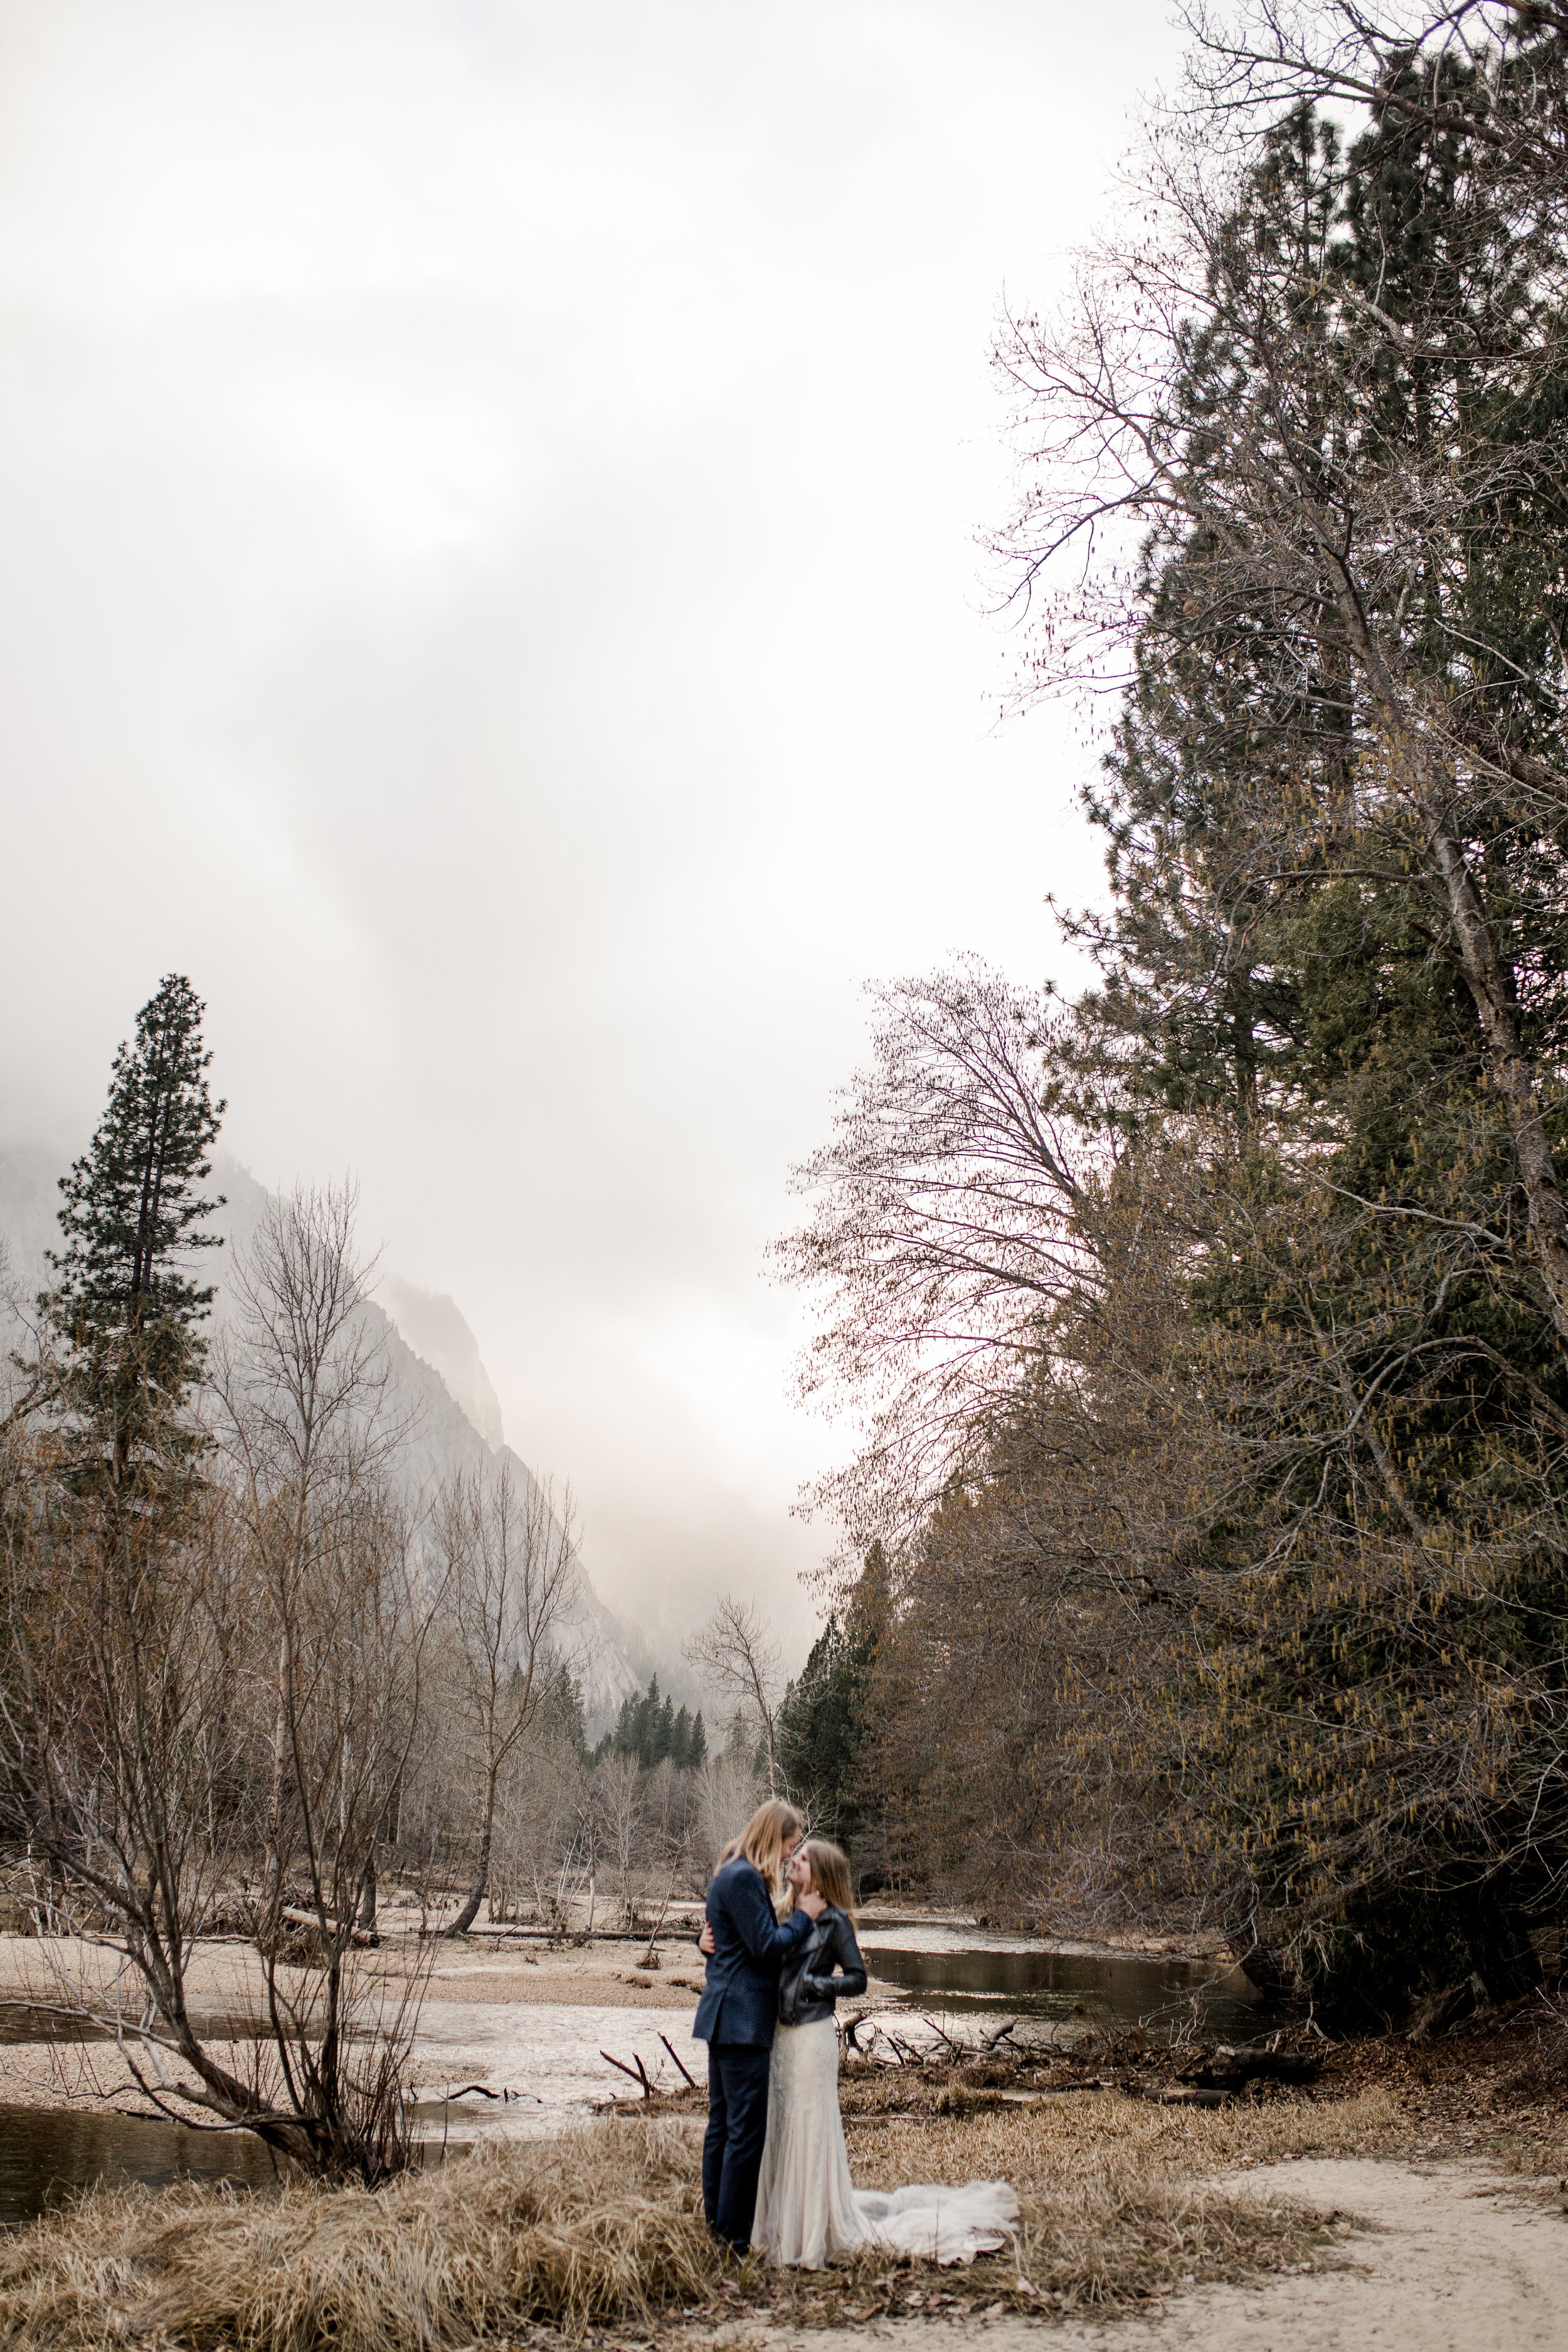 nicole-daacke-photography-yousemite-national-park-elopement-photographer-winter-cloud-moody-elope-inspiration-yosemite-valley-tunnel-view-winter-cloud-fog-weather-wedding-photos-45.jpg